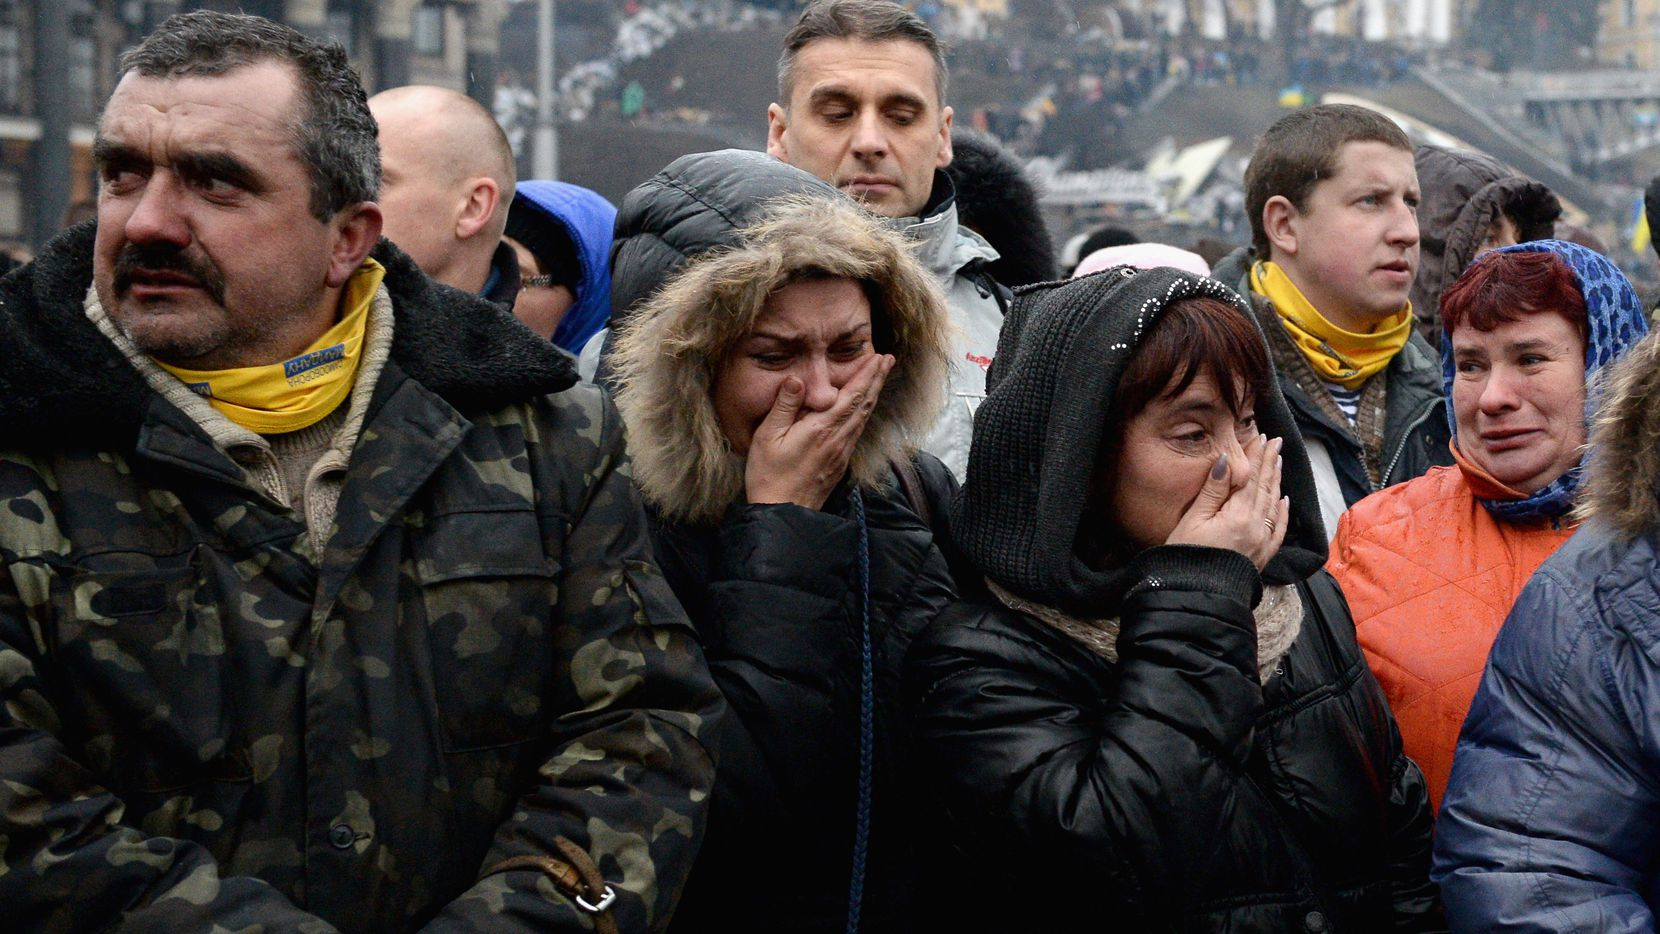 People react as the body of a dead anti-government demonstrator killed in clashes with police is carried through the crowd in Independence square in Kiev.